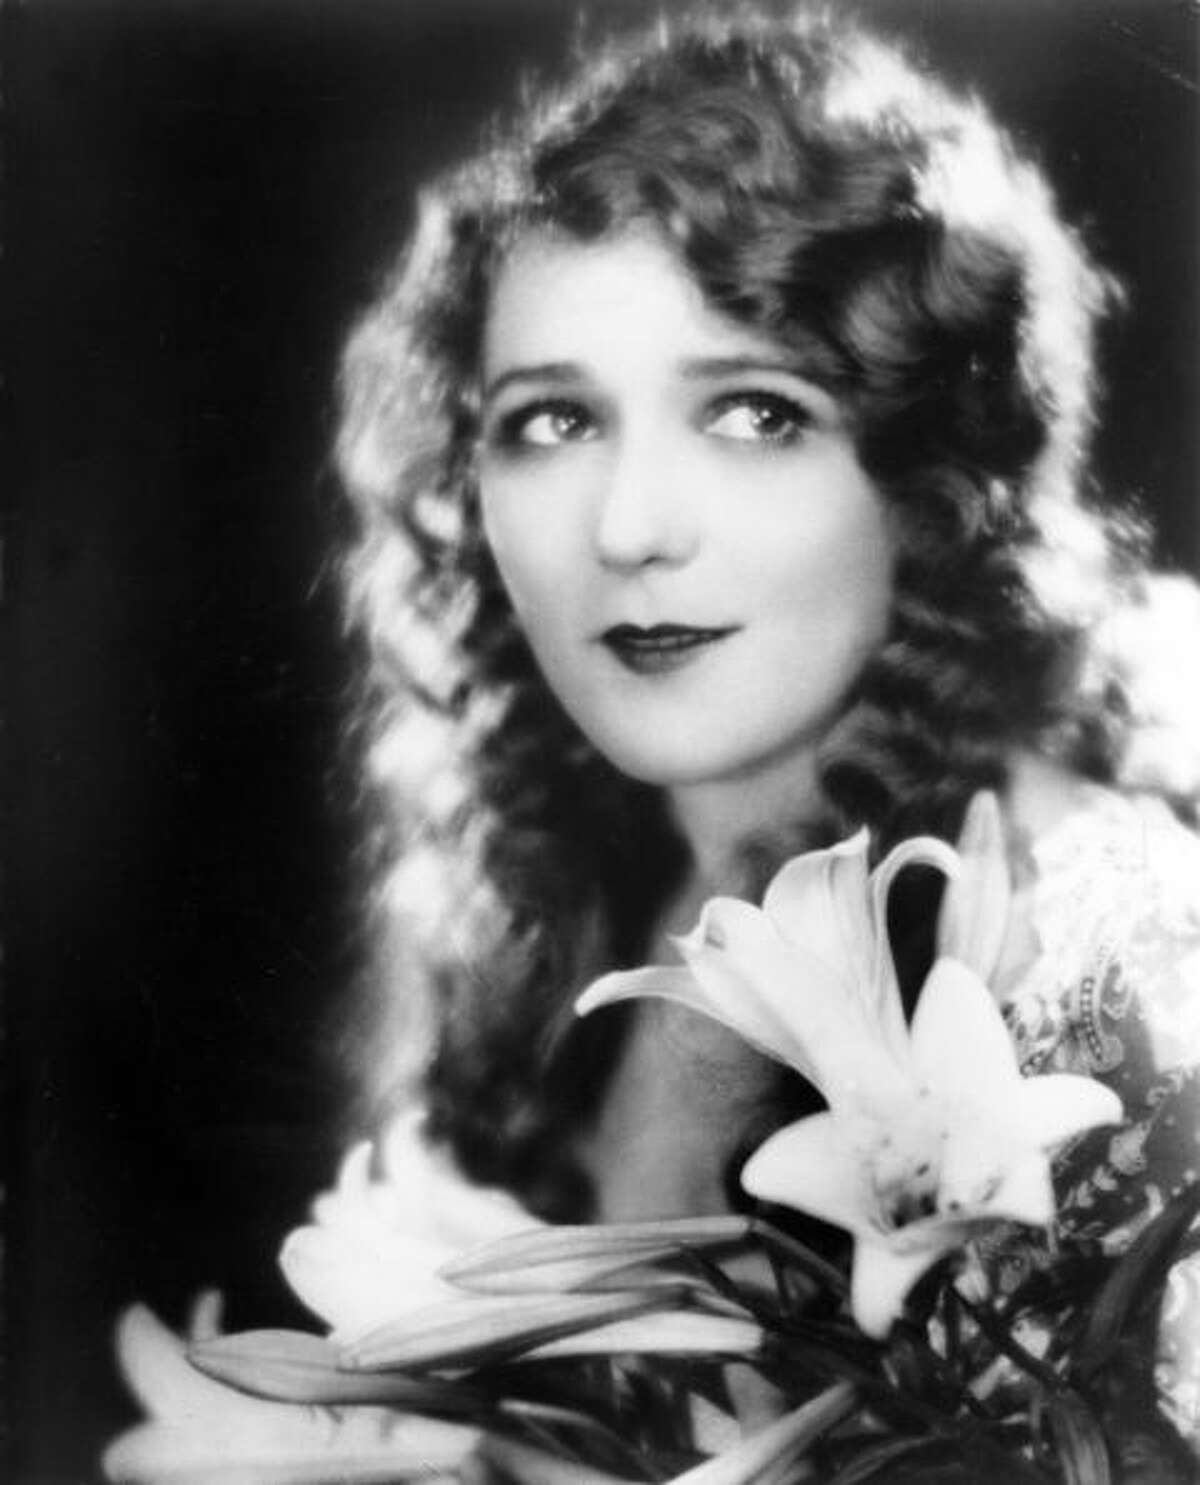 1925: Brushed Out Waves As soft and ethereal as the early films this style was worn for, brushed out waves gave actresses like Mary Pickford a feminine silhouette.